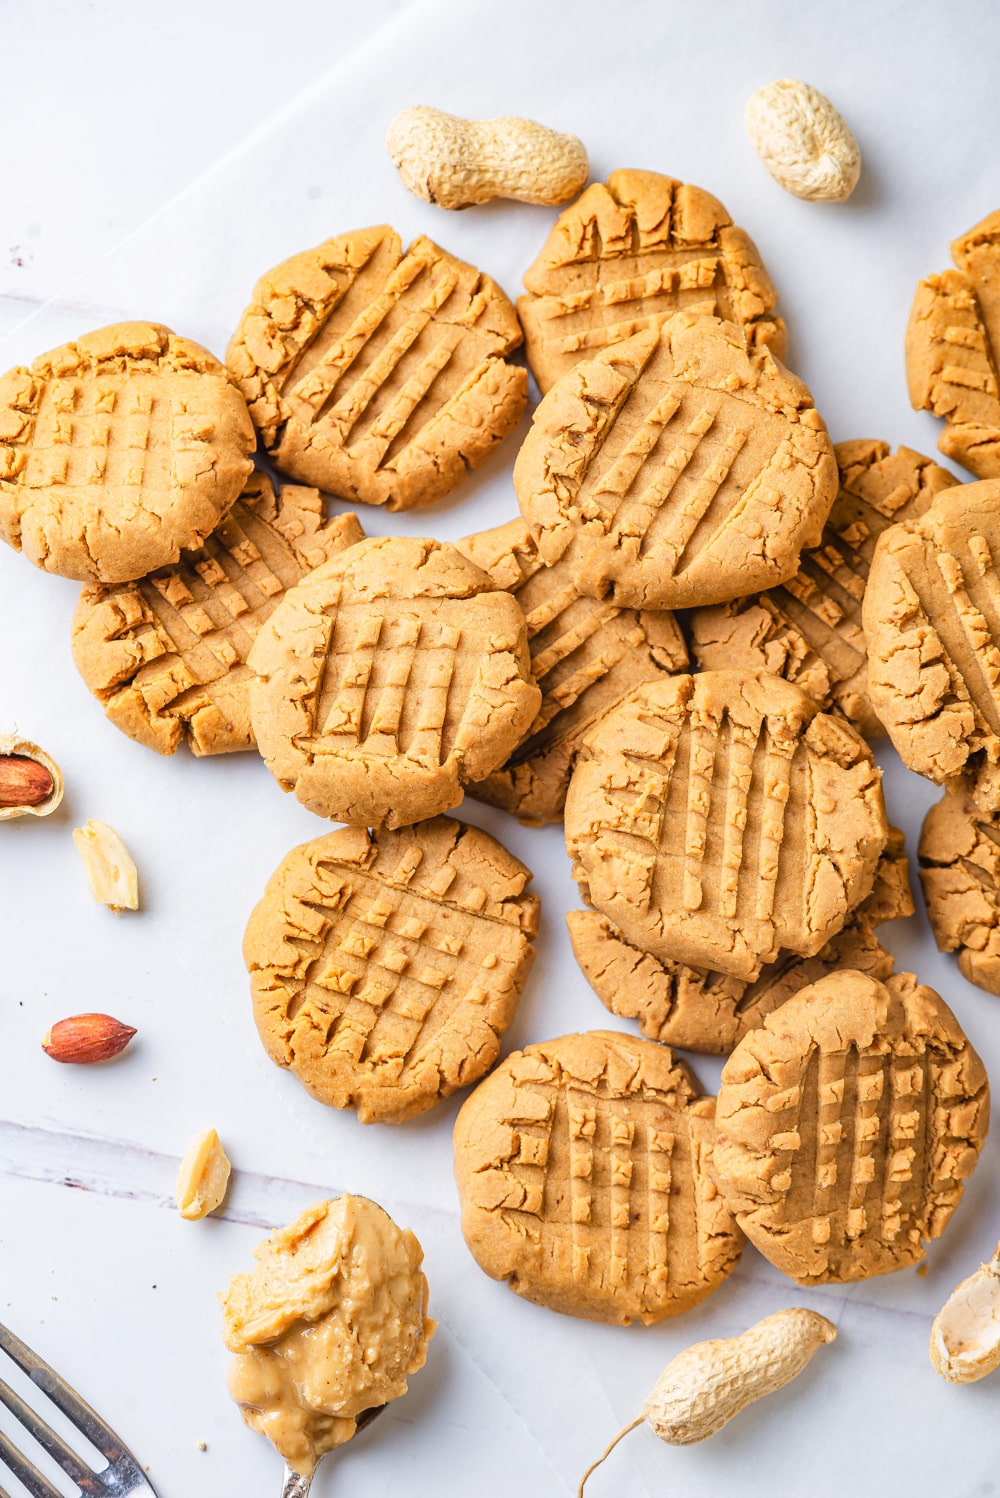 About fourteen vegan peanut butter cookies scattered on a white counter. Some cookies are laying flat and others are overlapping one another. There is a spoonful of peanut butter at the bottom of all the cookies and few peanuts scattered on the outsides of the group of cookies.